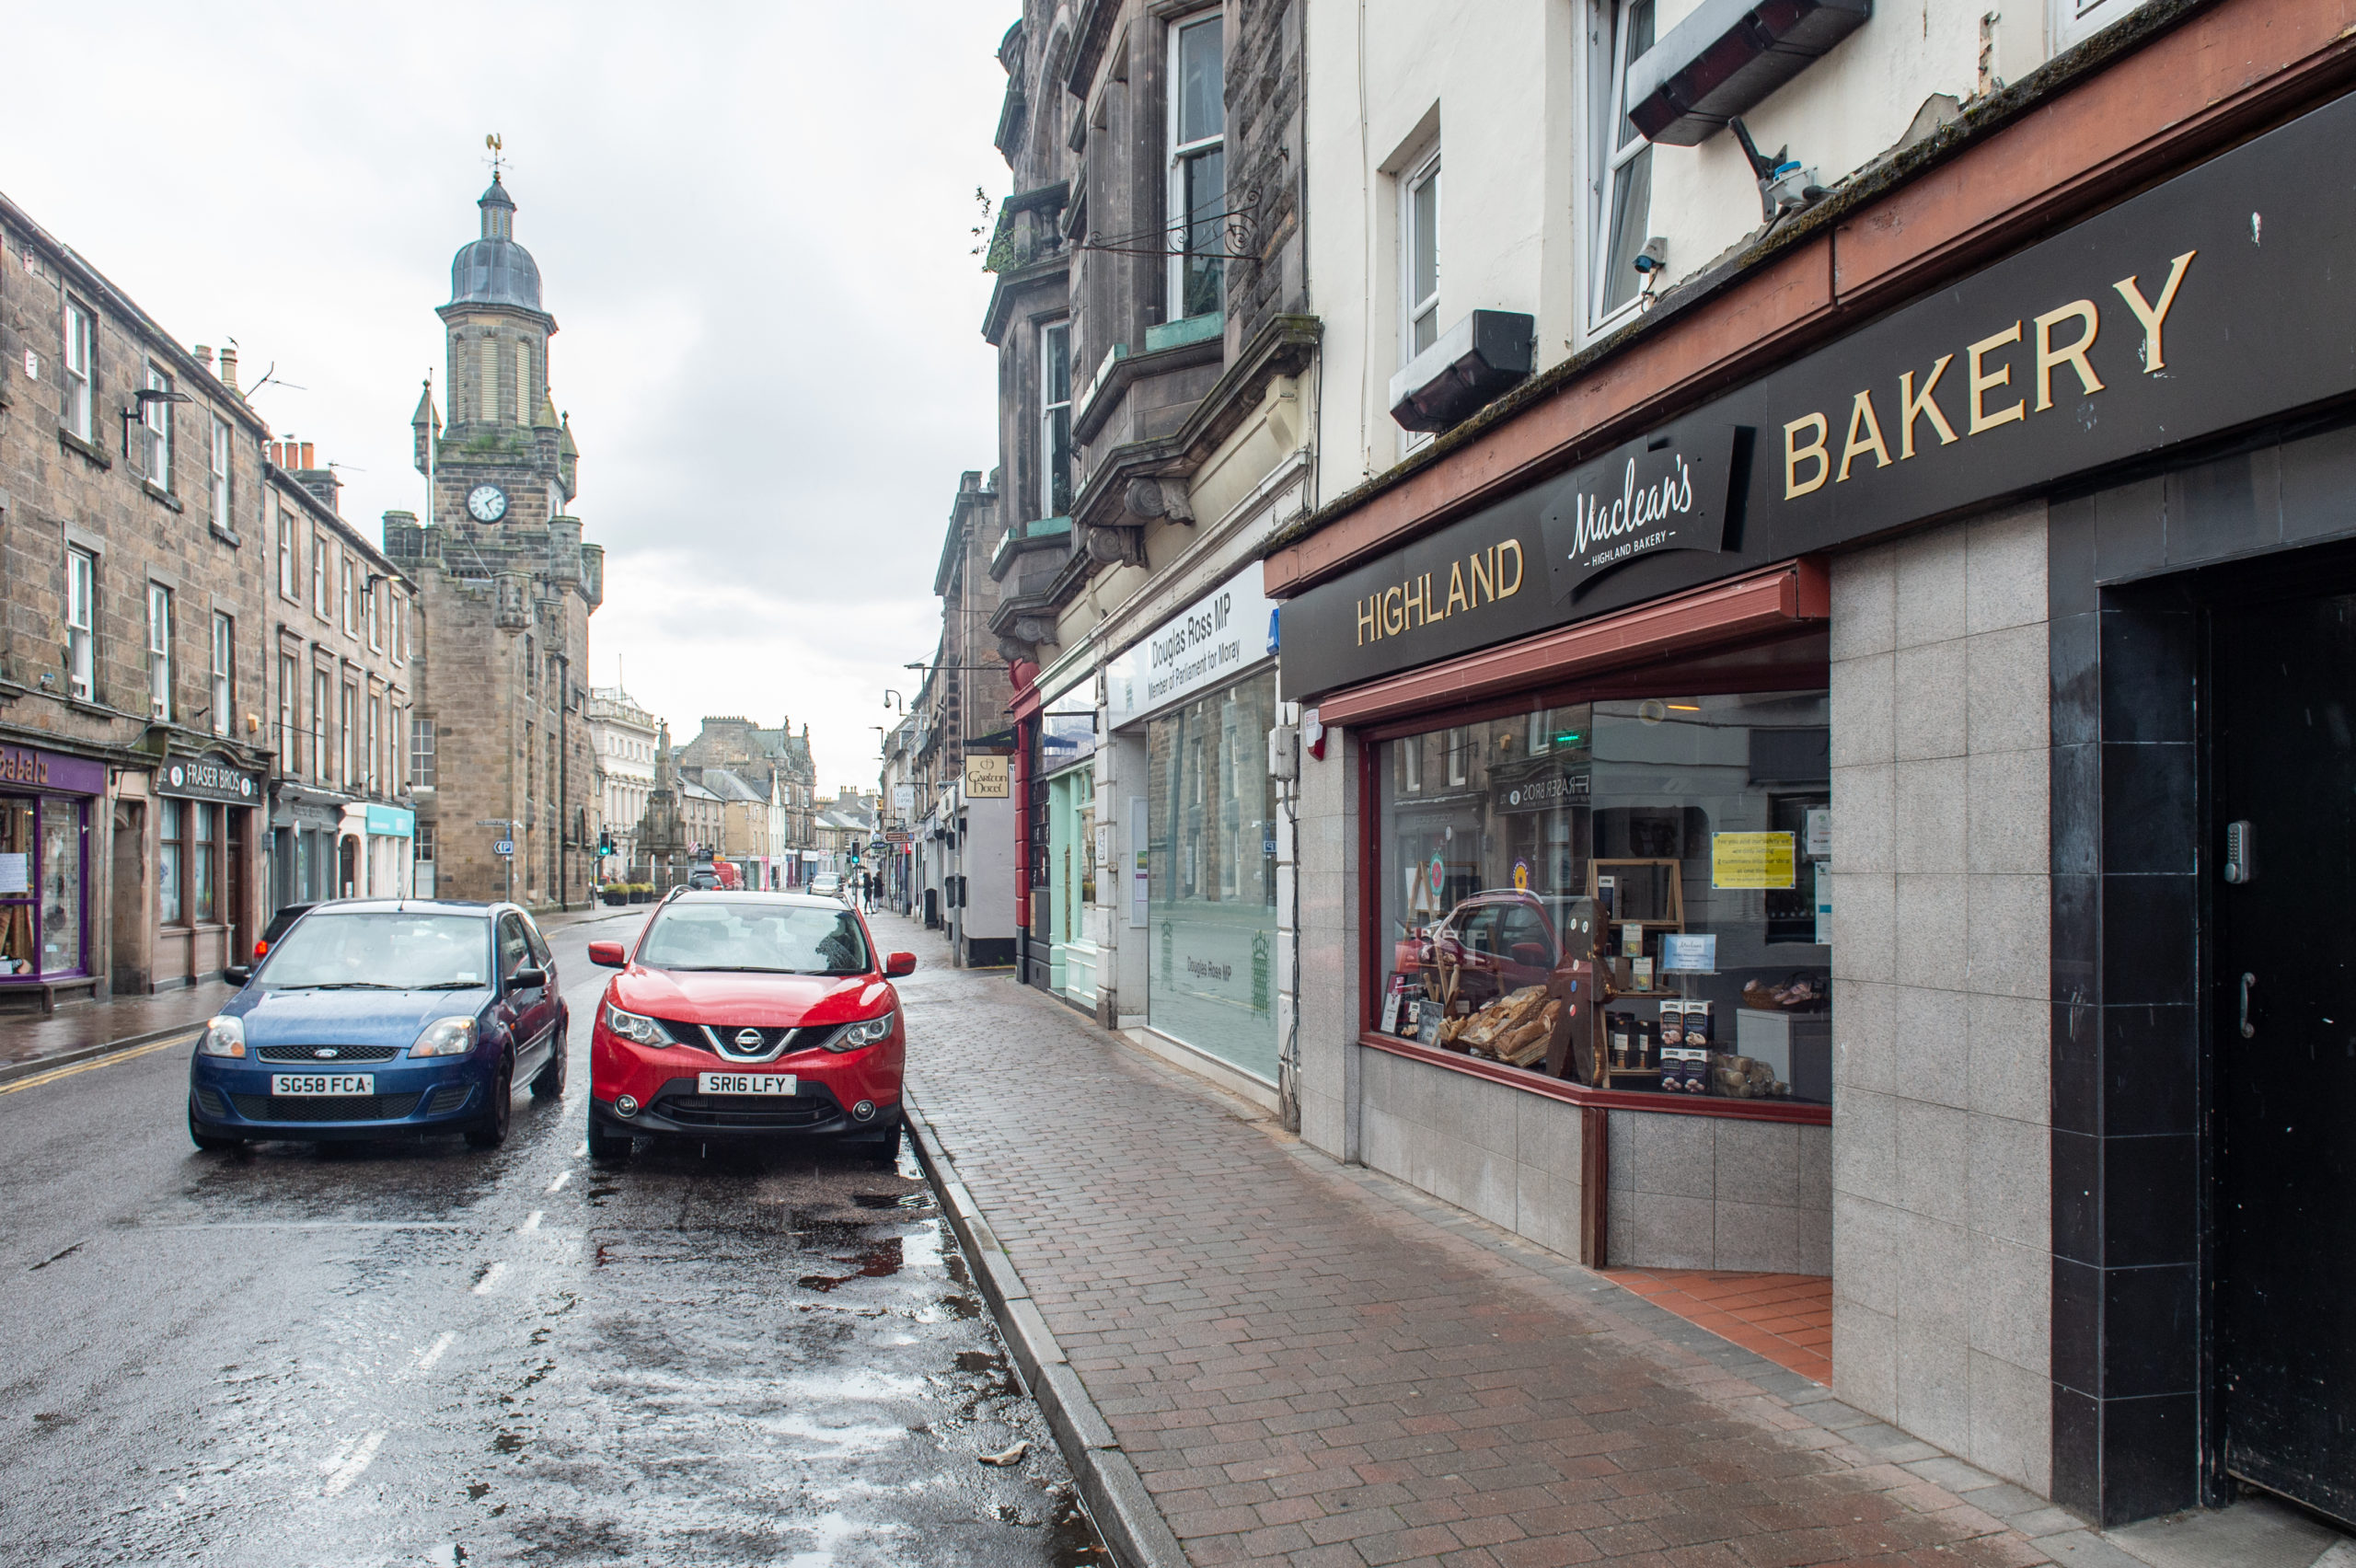 The parking bay in front of Maclean's Bakery in Forres. Pictures by Jason Hedges.